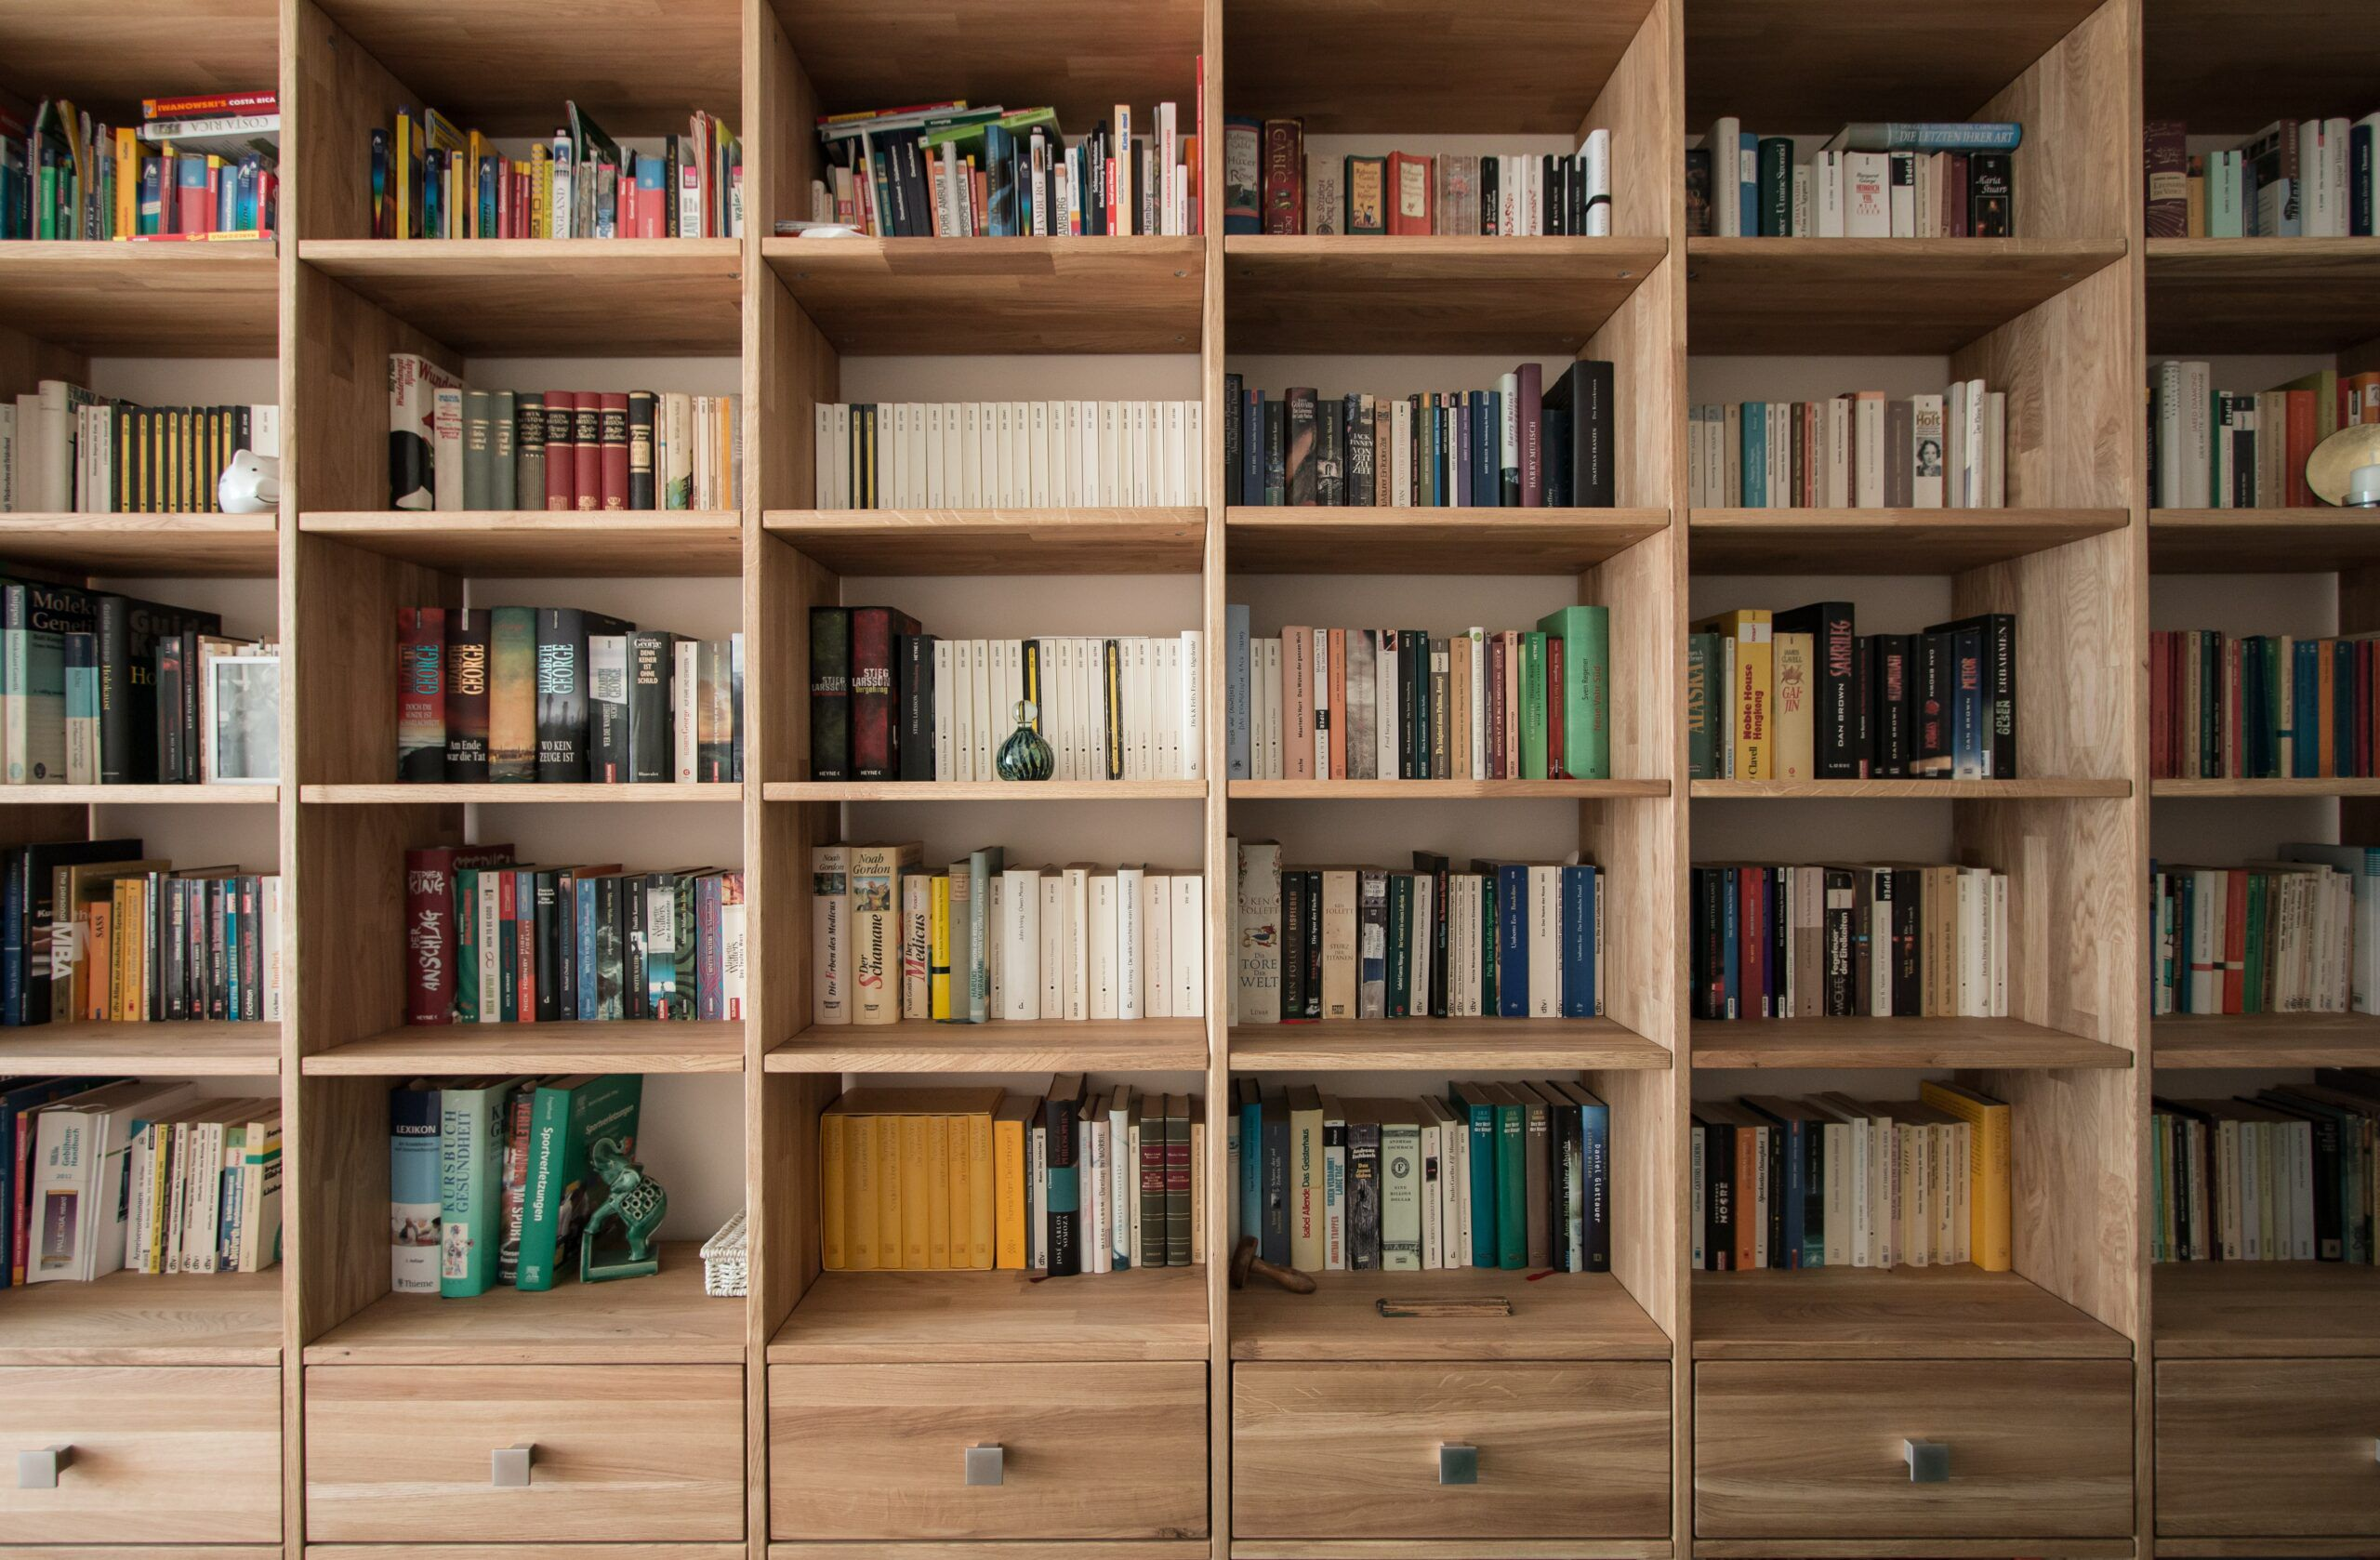 Decolonizing Your Bookshelf: The What, The Why, and The How